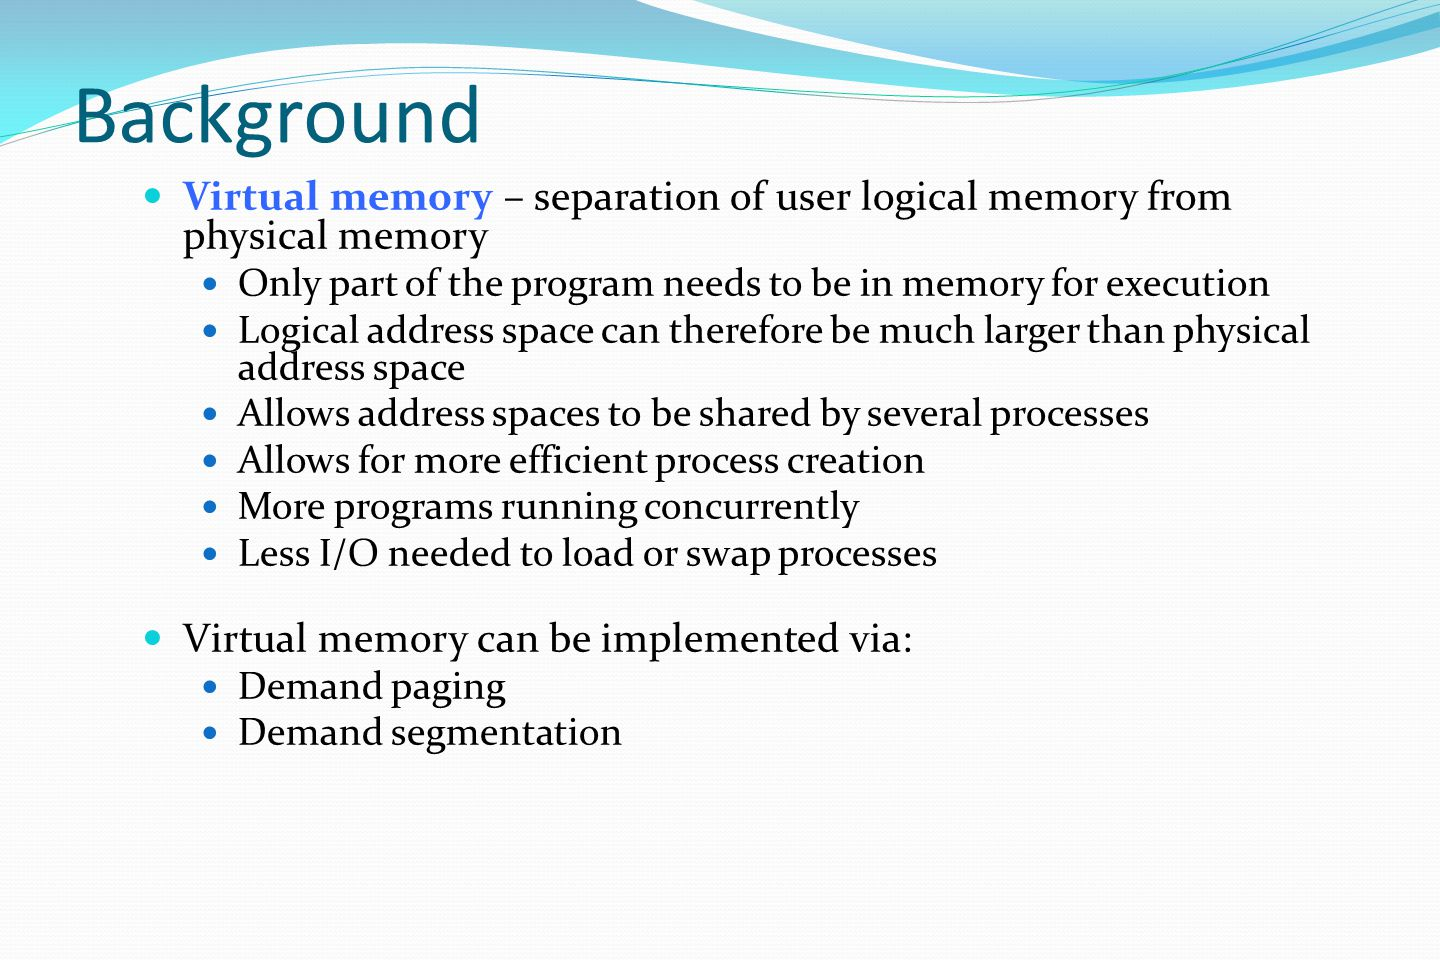 Background Virtual memory – separation of user logical memory from physical memory Only part of the program needs to be in memory for execution Logical address space can therefore be much larger than physical address space Allows address spaces to be shared by several processes Allows for more efficient process creation More programs running concurrently Less I/O needed to load or swap processes Virtual memory can be implemented via: Demand paging Demand segmentation